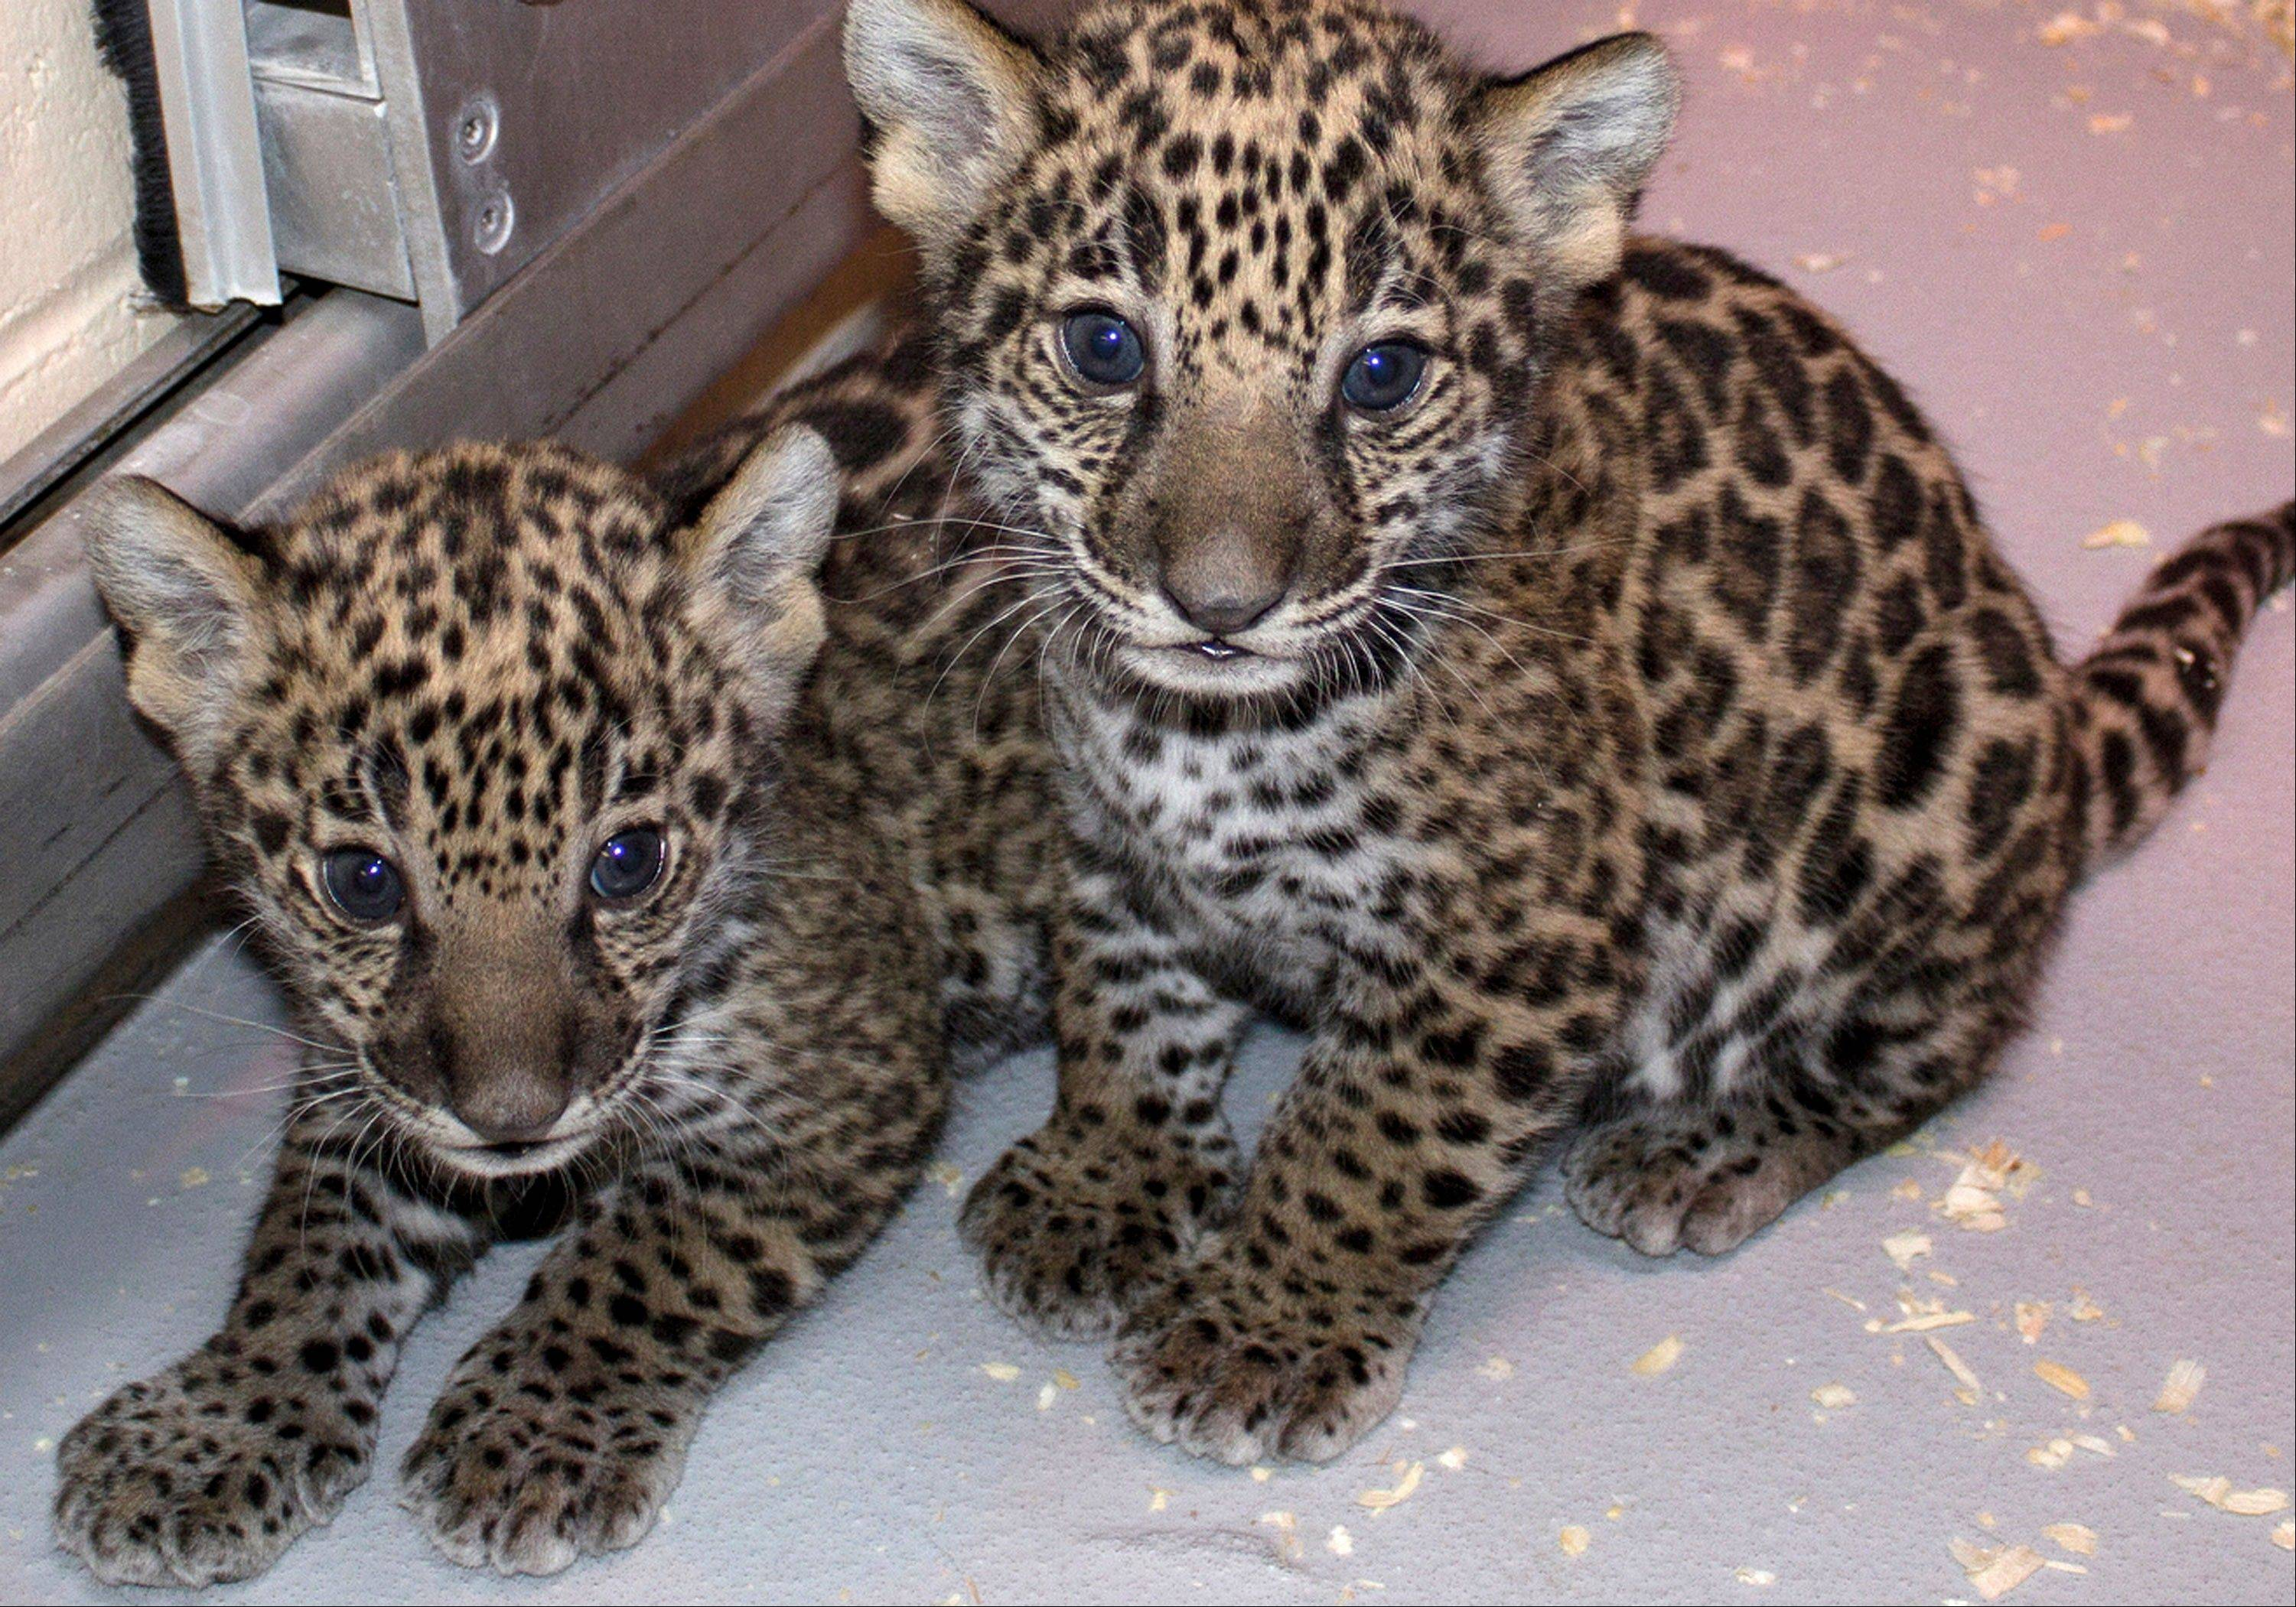 Two baby jaguar cubs born at the Milwaukee County Zoo in November. Jaguars are an endangered species. Stacy Johnson, coordinator of the jaguar species survival plan for the American Zoo and Aquarium Association, said their birth was a big deal because their father was born in the wild and brings new genes to zoos.